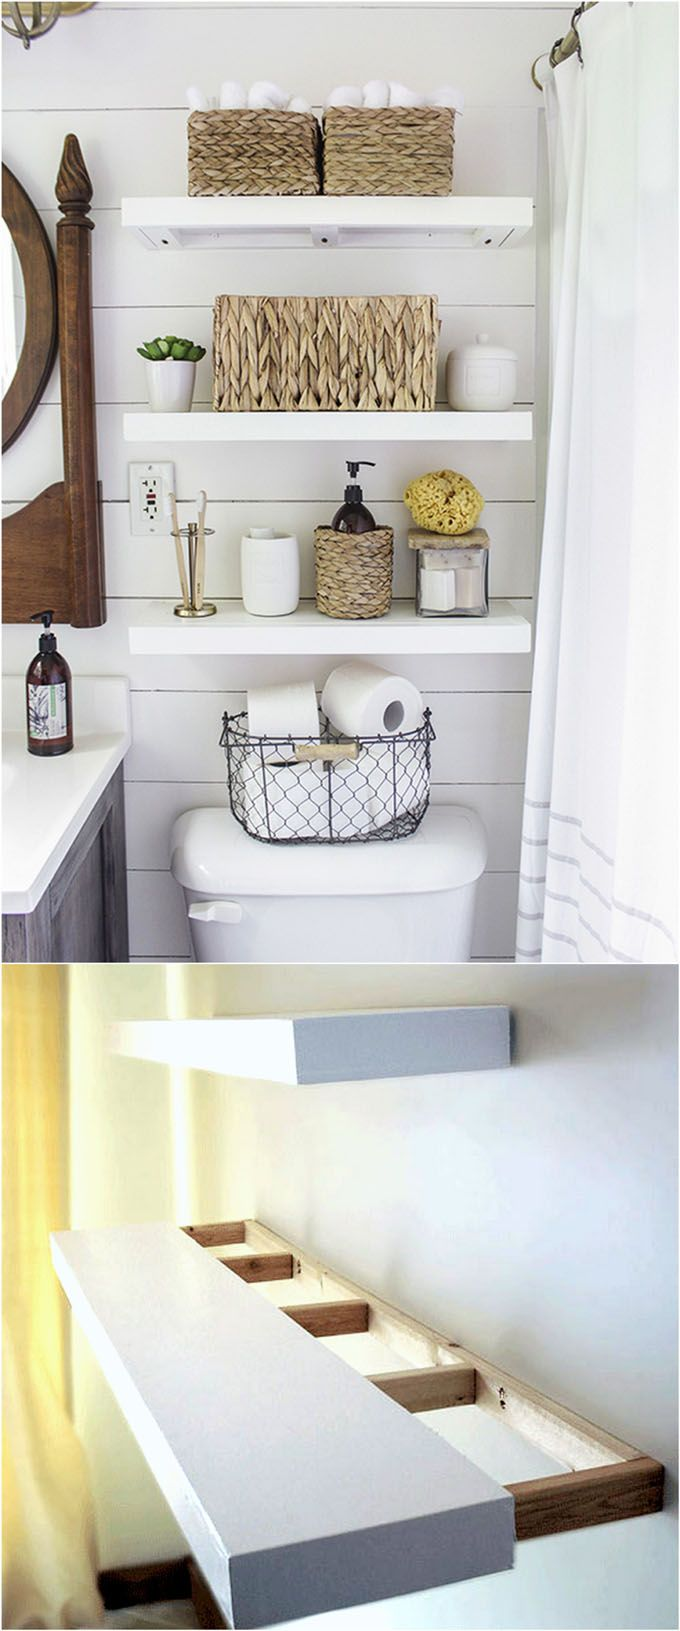 easy and stylish diy floating shelves wall hometalk for bathroom tutorials building beautiful check out all the gorgeous brackets supports finishes design inspirations small